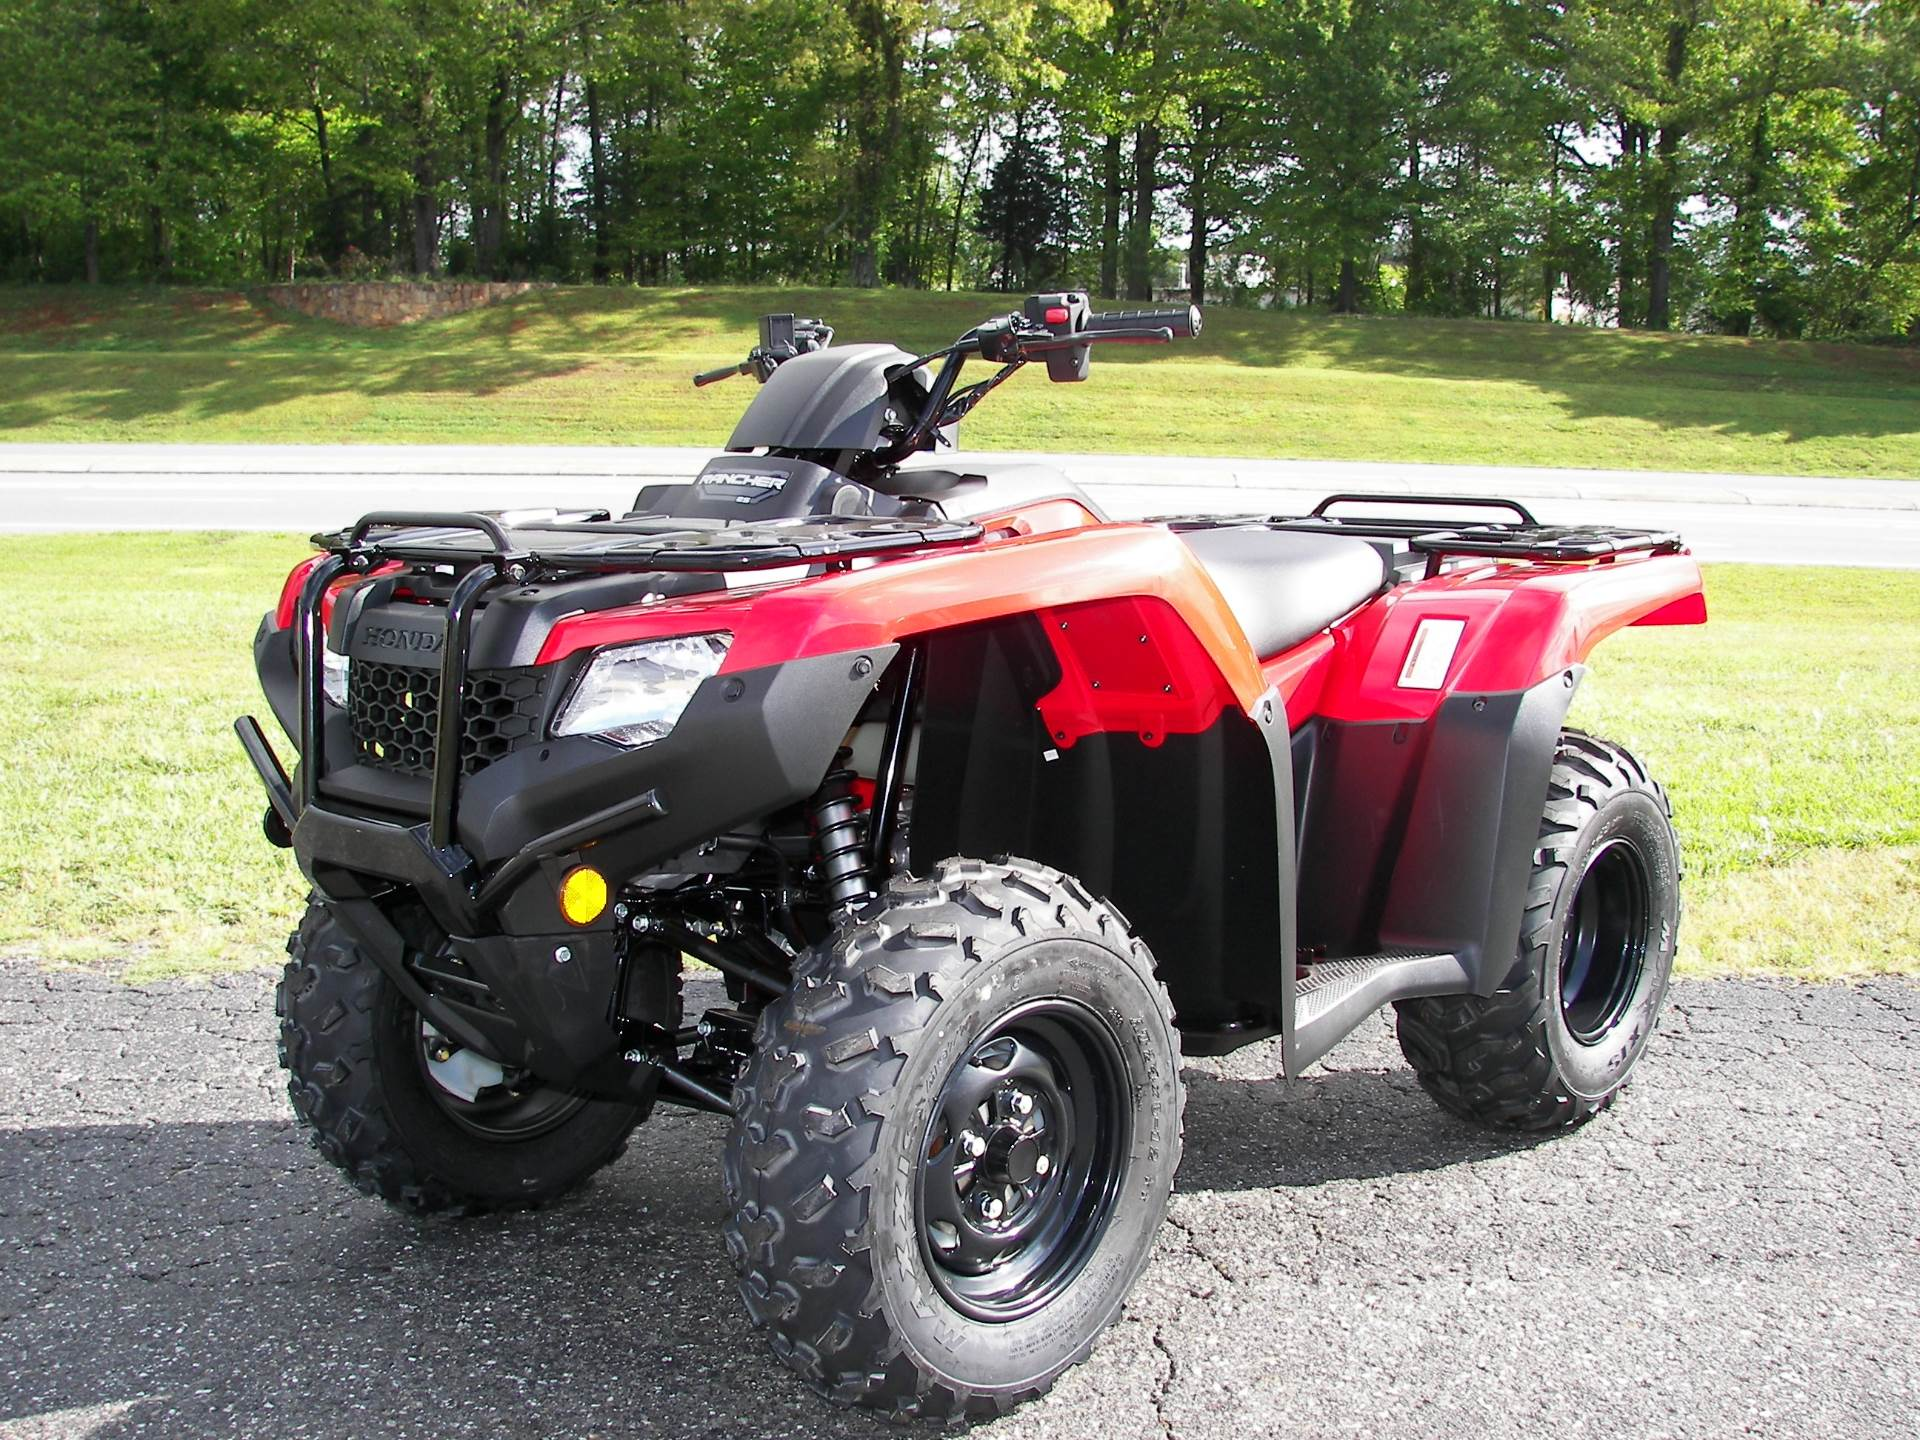 2020 Honda FourTrax Rancher ES in Shelby, North Carolina - Photo 3